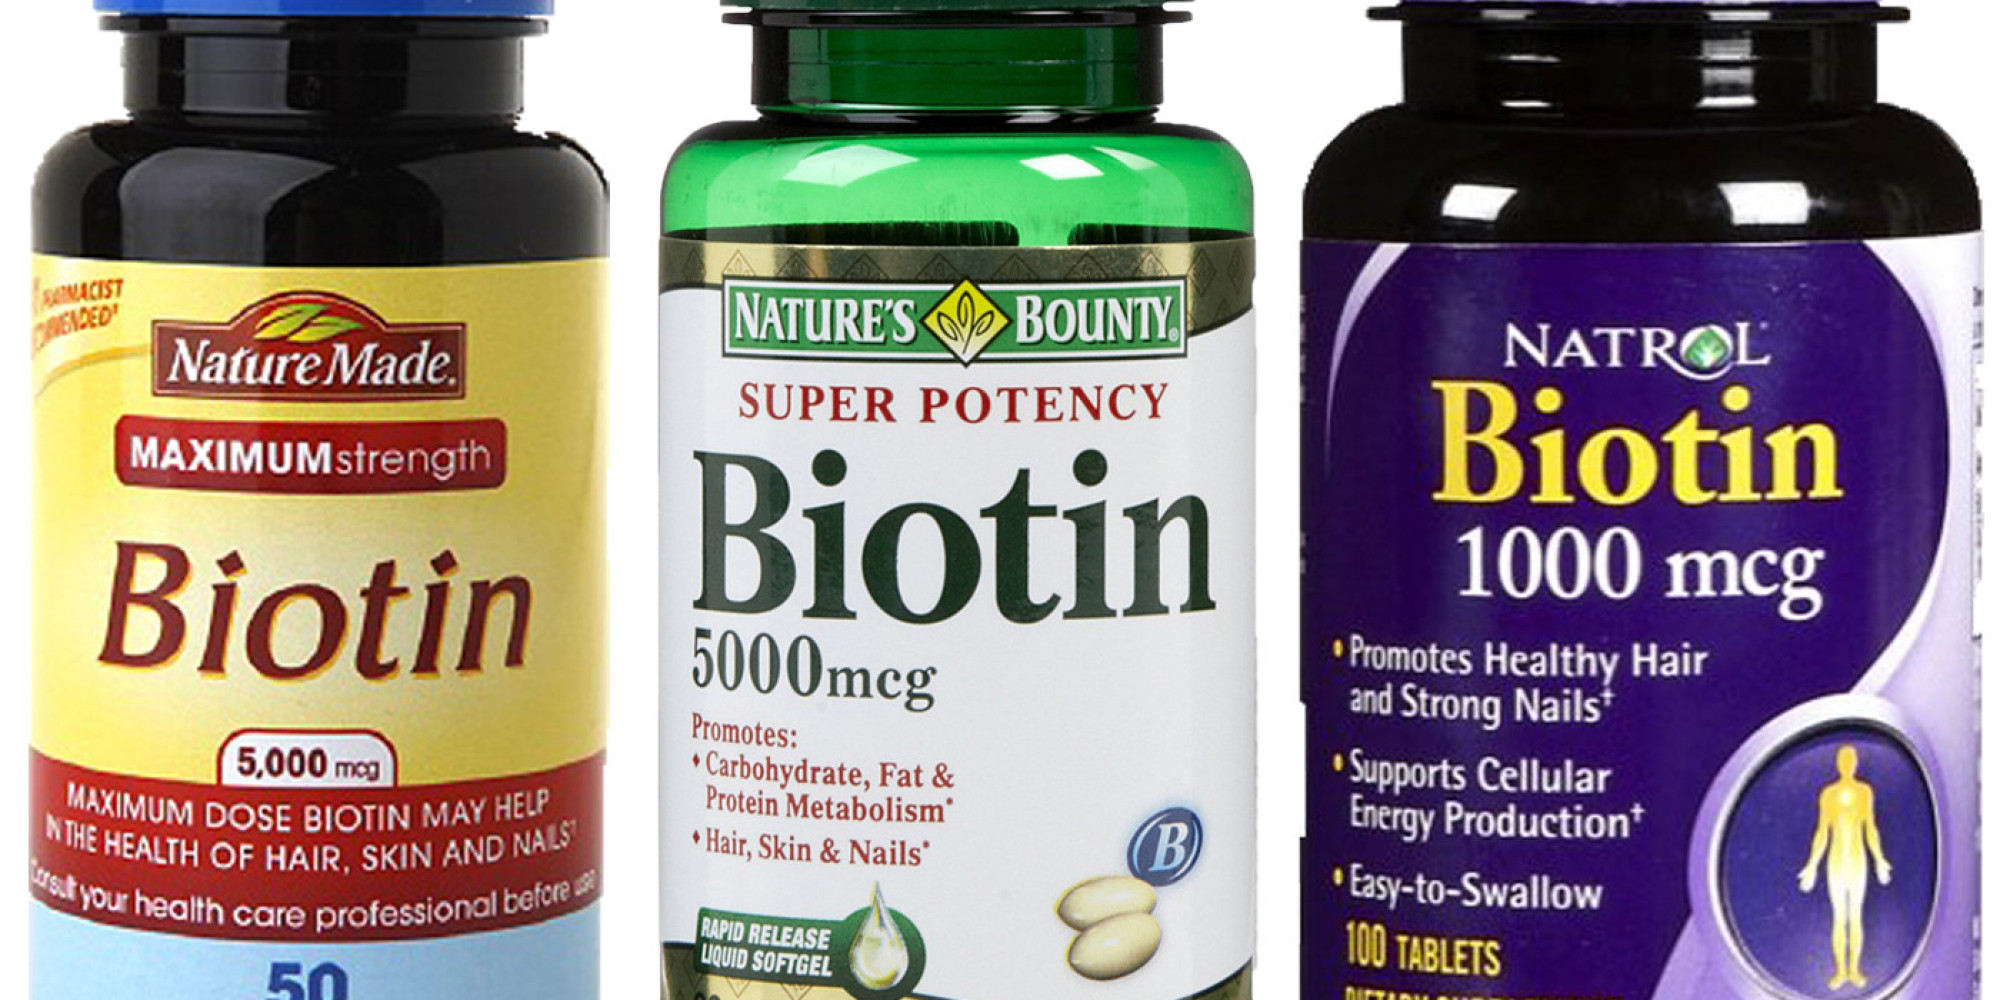 Why You Should Be Cautious Of Taking Biotin For Your Hair ...